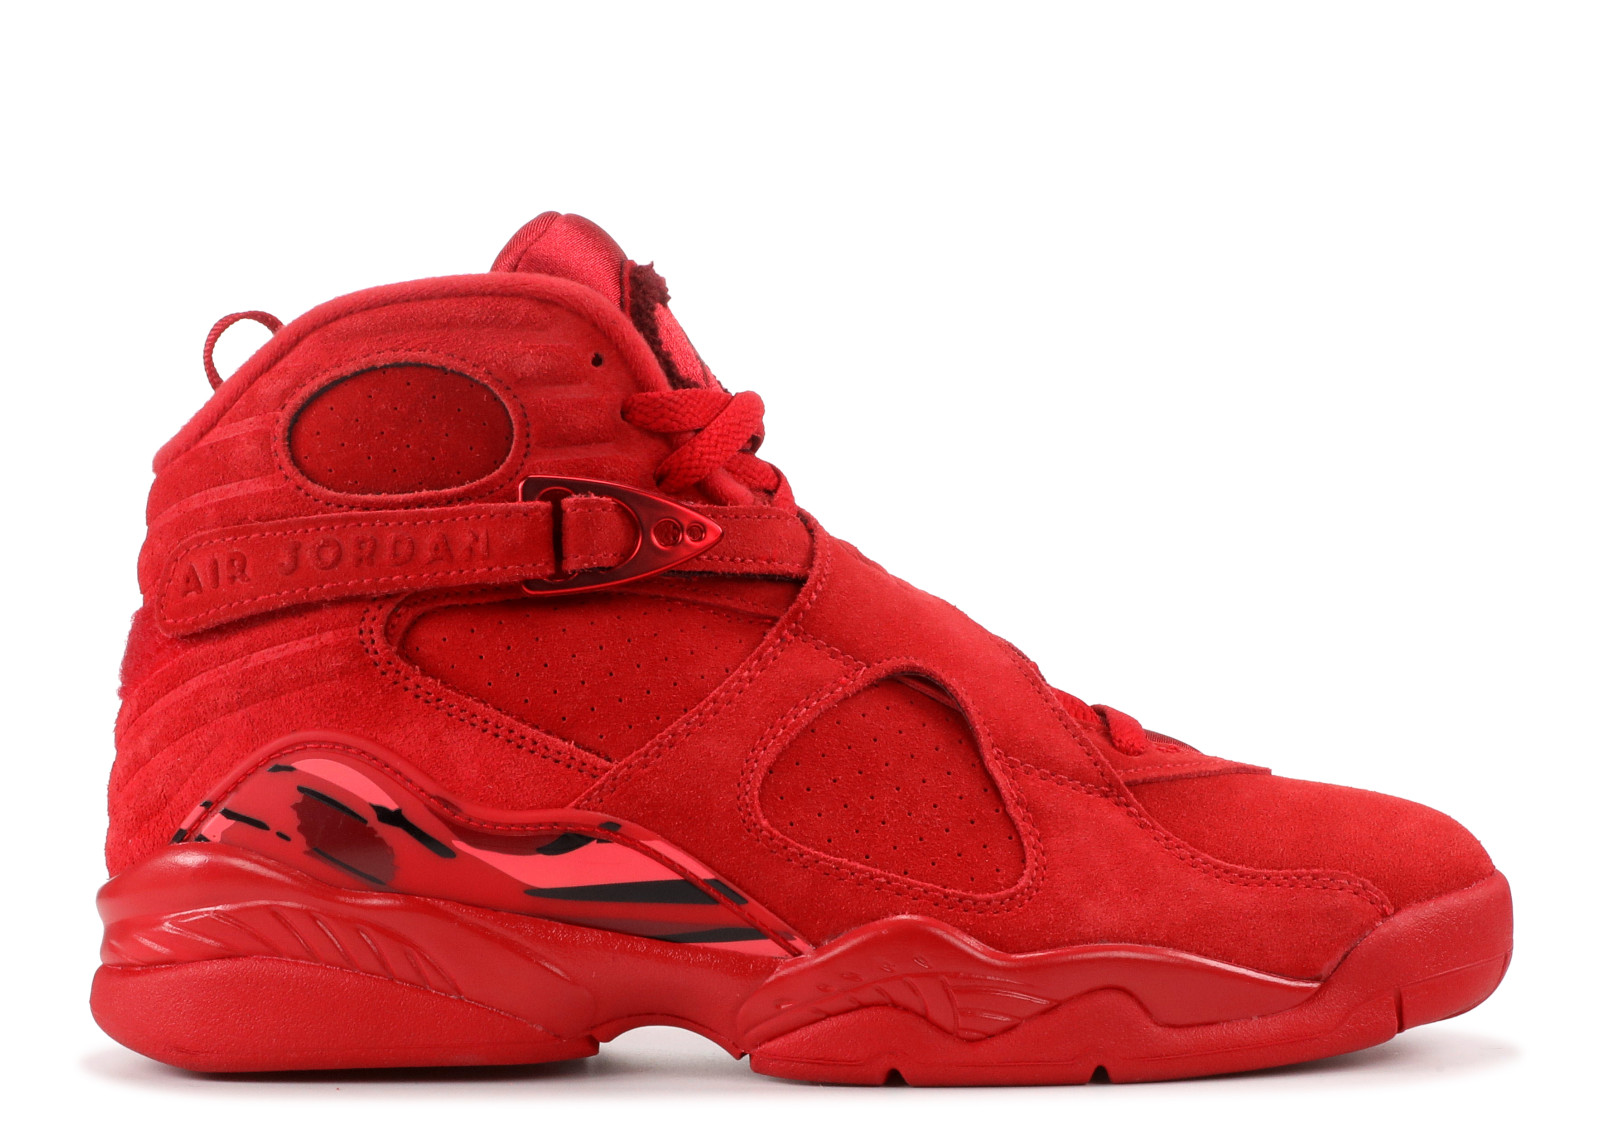 Air Jordan 8 Retro Valentine's day